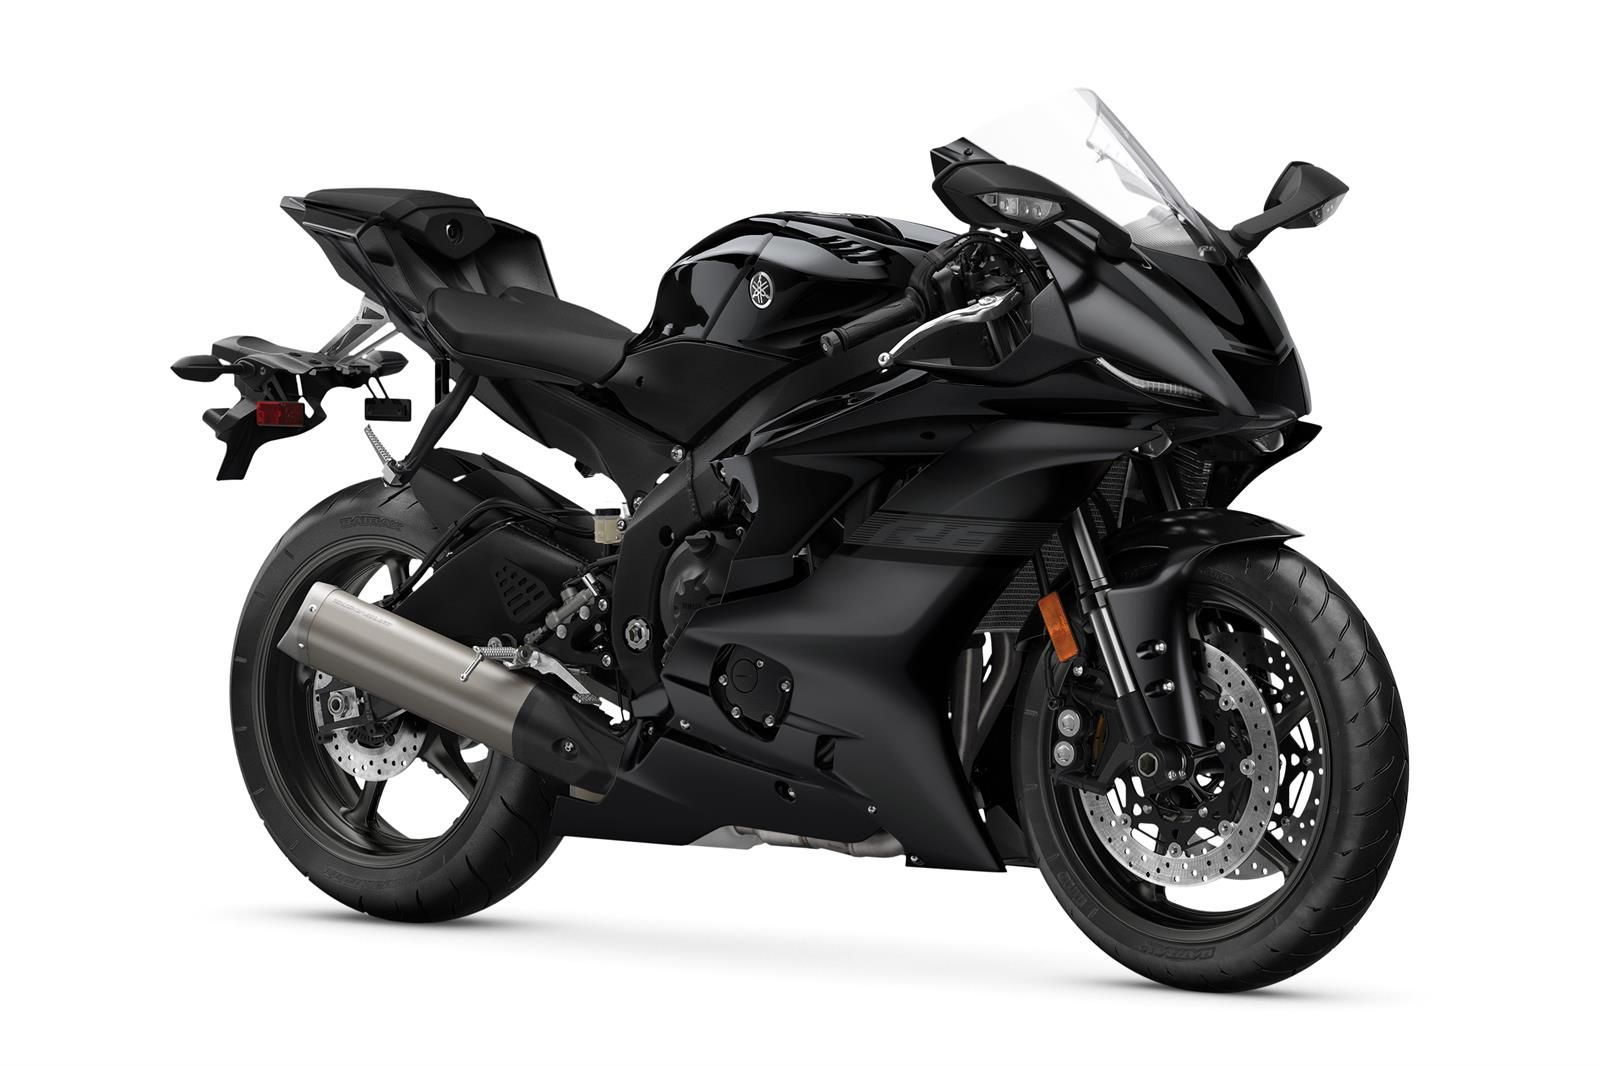 2020 Yamaha Yzf R6 2020 Yamaha Yzf R6 Yamaha Some Say The 600cc Supersport Class Is Dead That It Has Left The Station N In 2020 Yamaha Yzf Yamaha Yzf R6 Yamaha